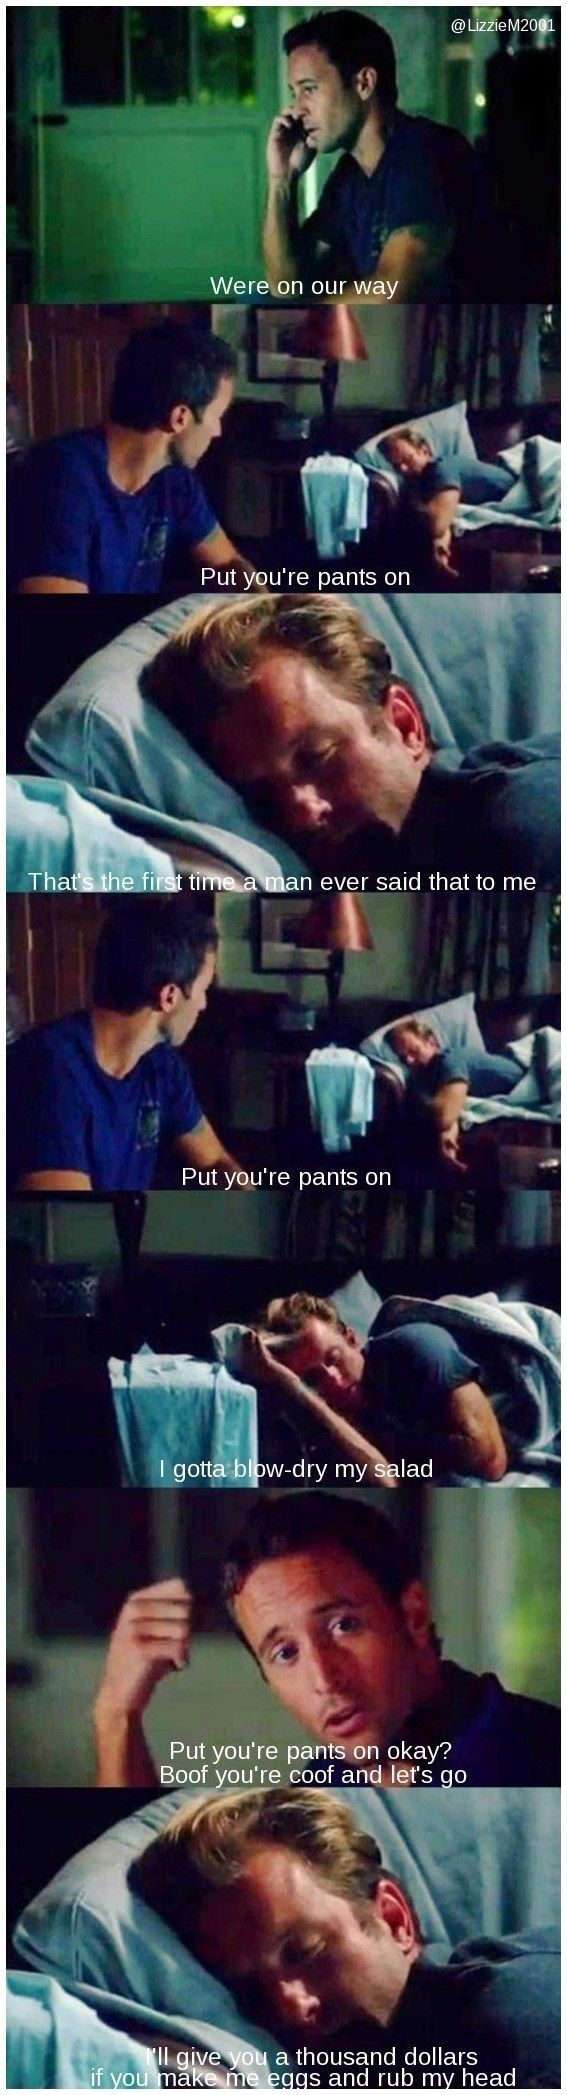 Hawaii Five-O - Steve & Danny- Is Danny talking in his sleep? Or does he actually mean that stuff?